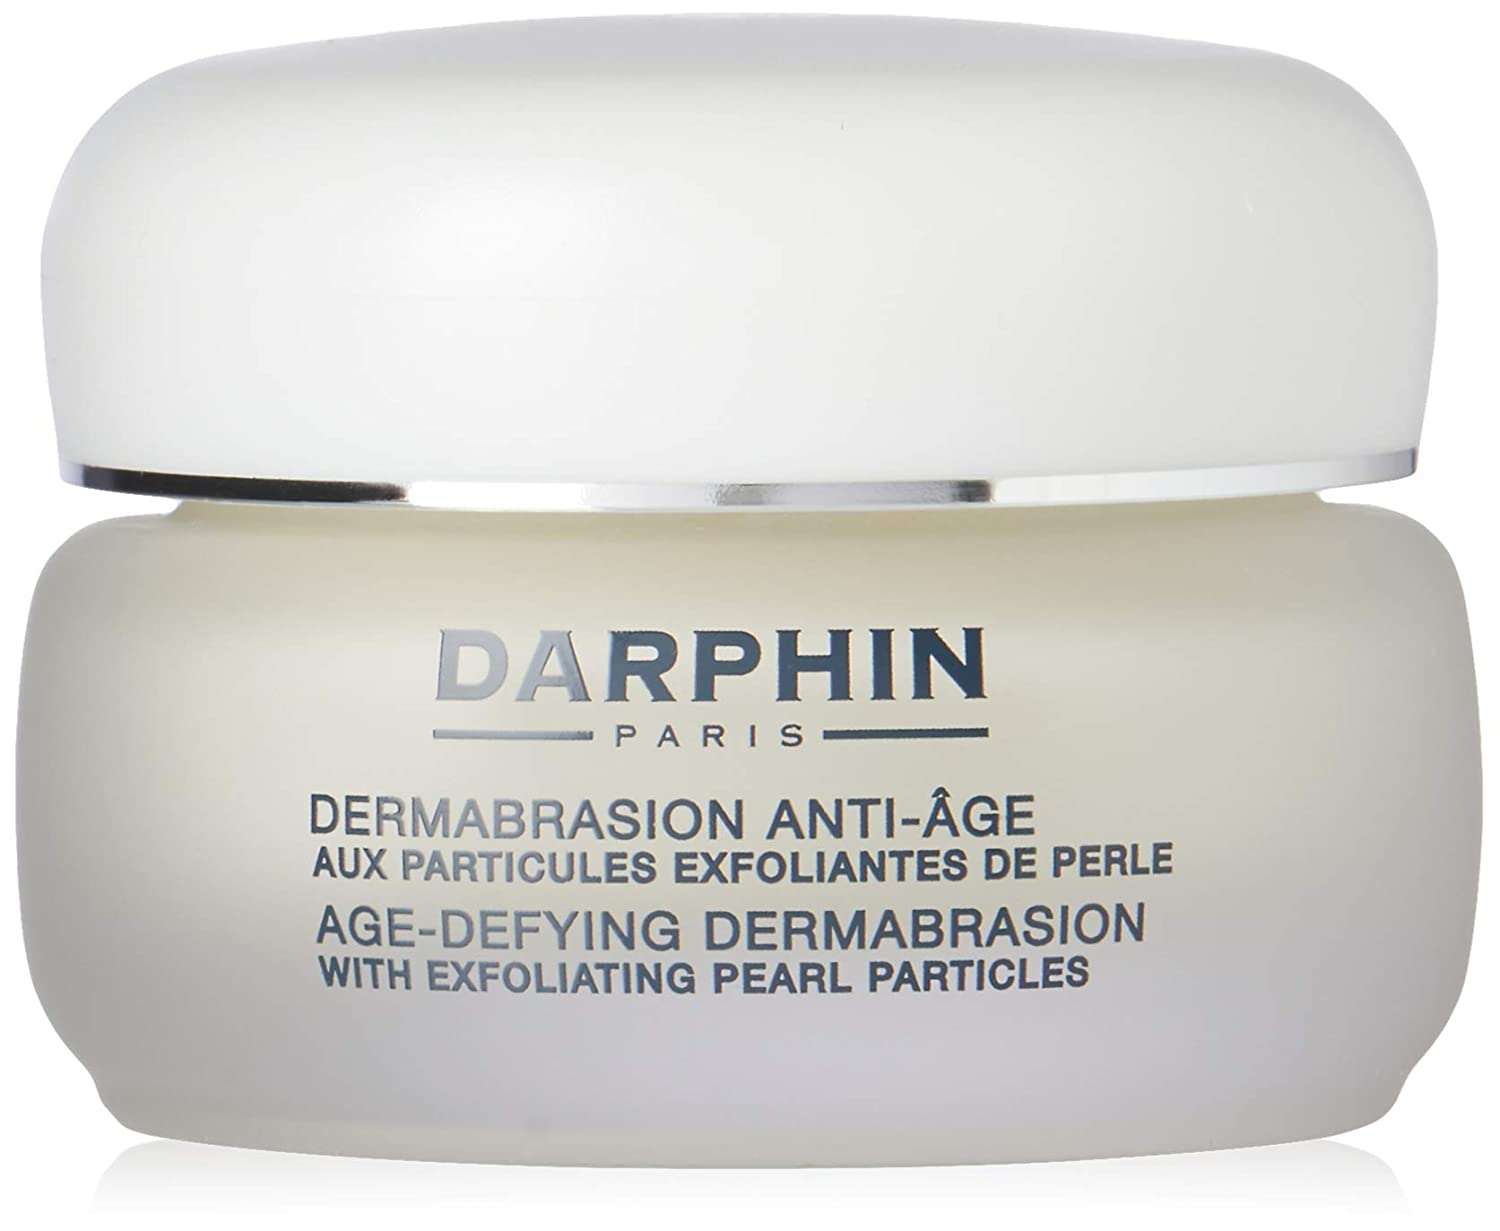 Darphin Age-Defying Dermabrasion with Exfoliating Pearl Particles for All Skin Types, 1.6 Ounce